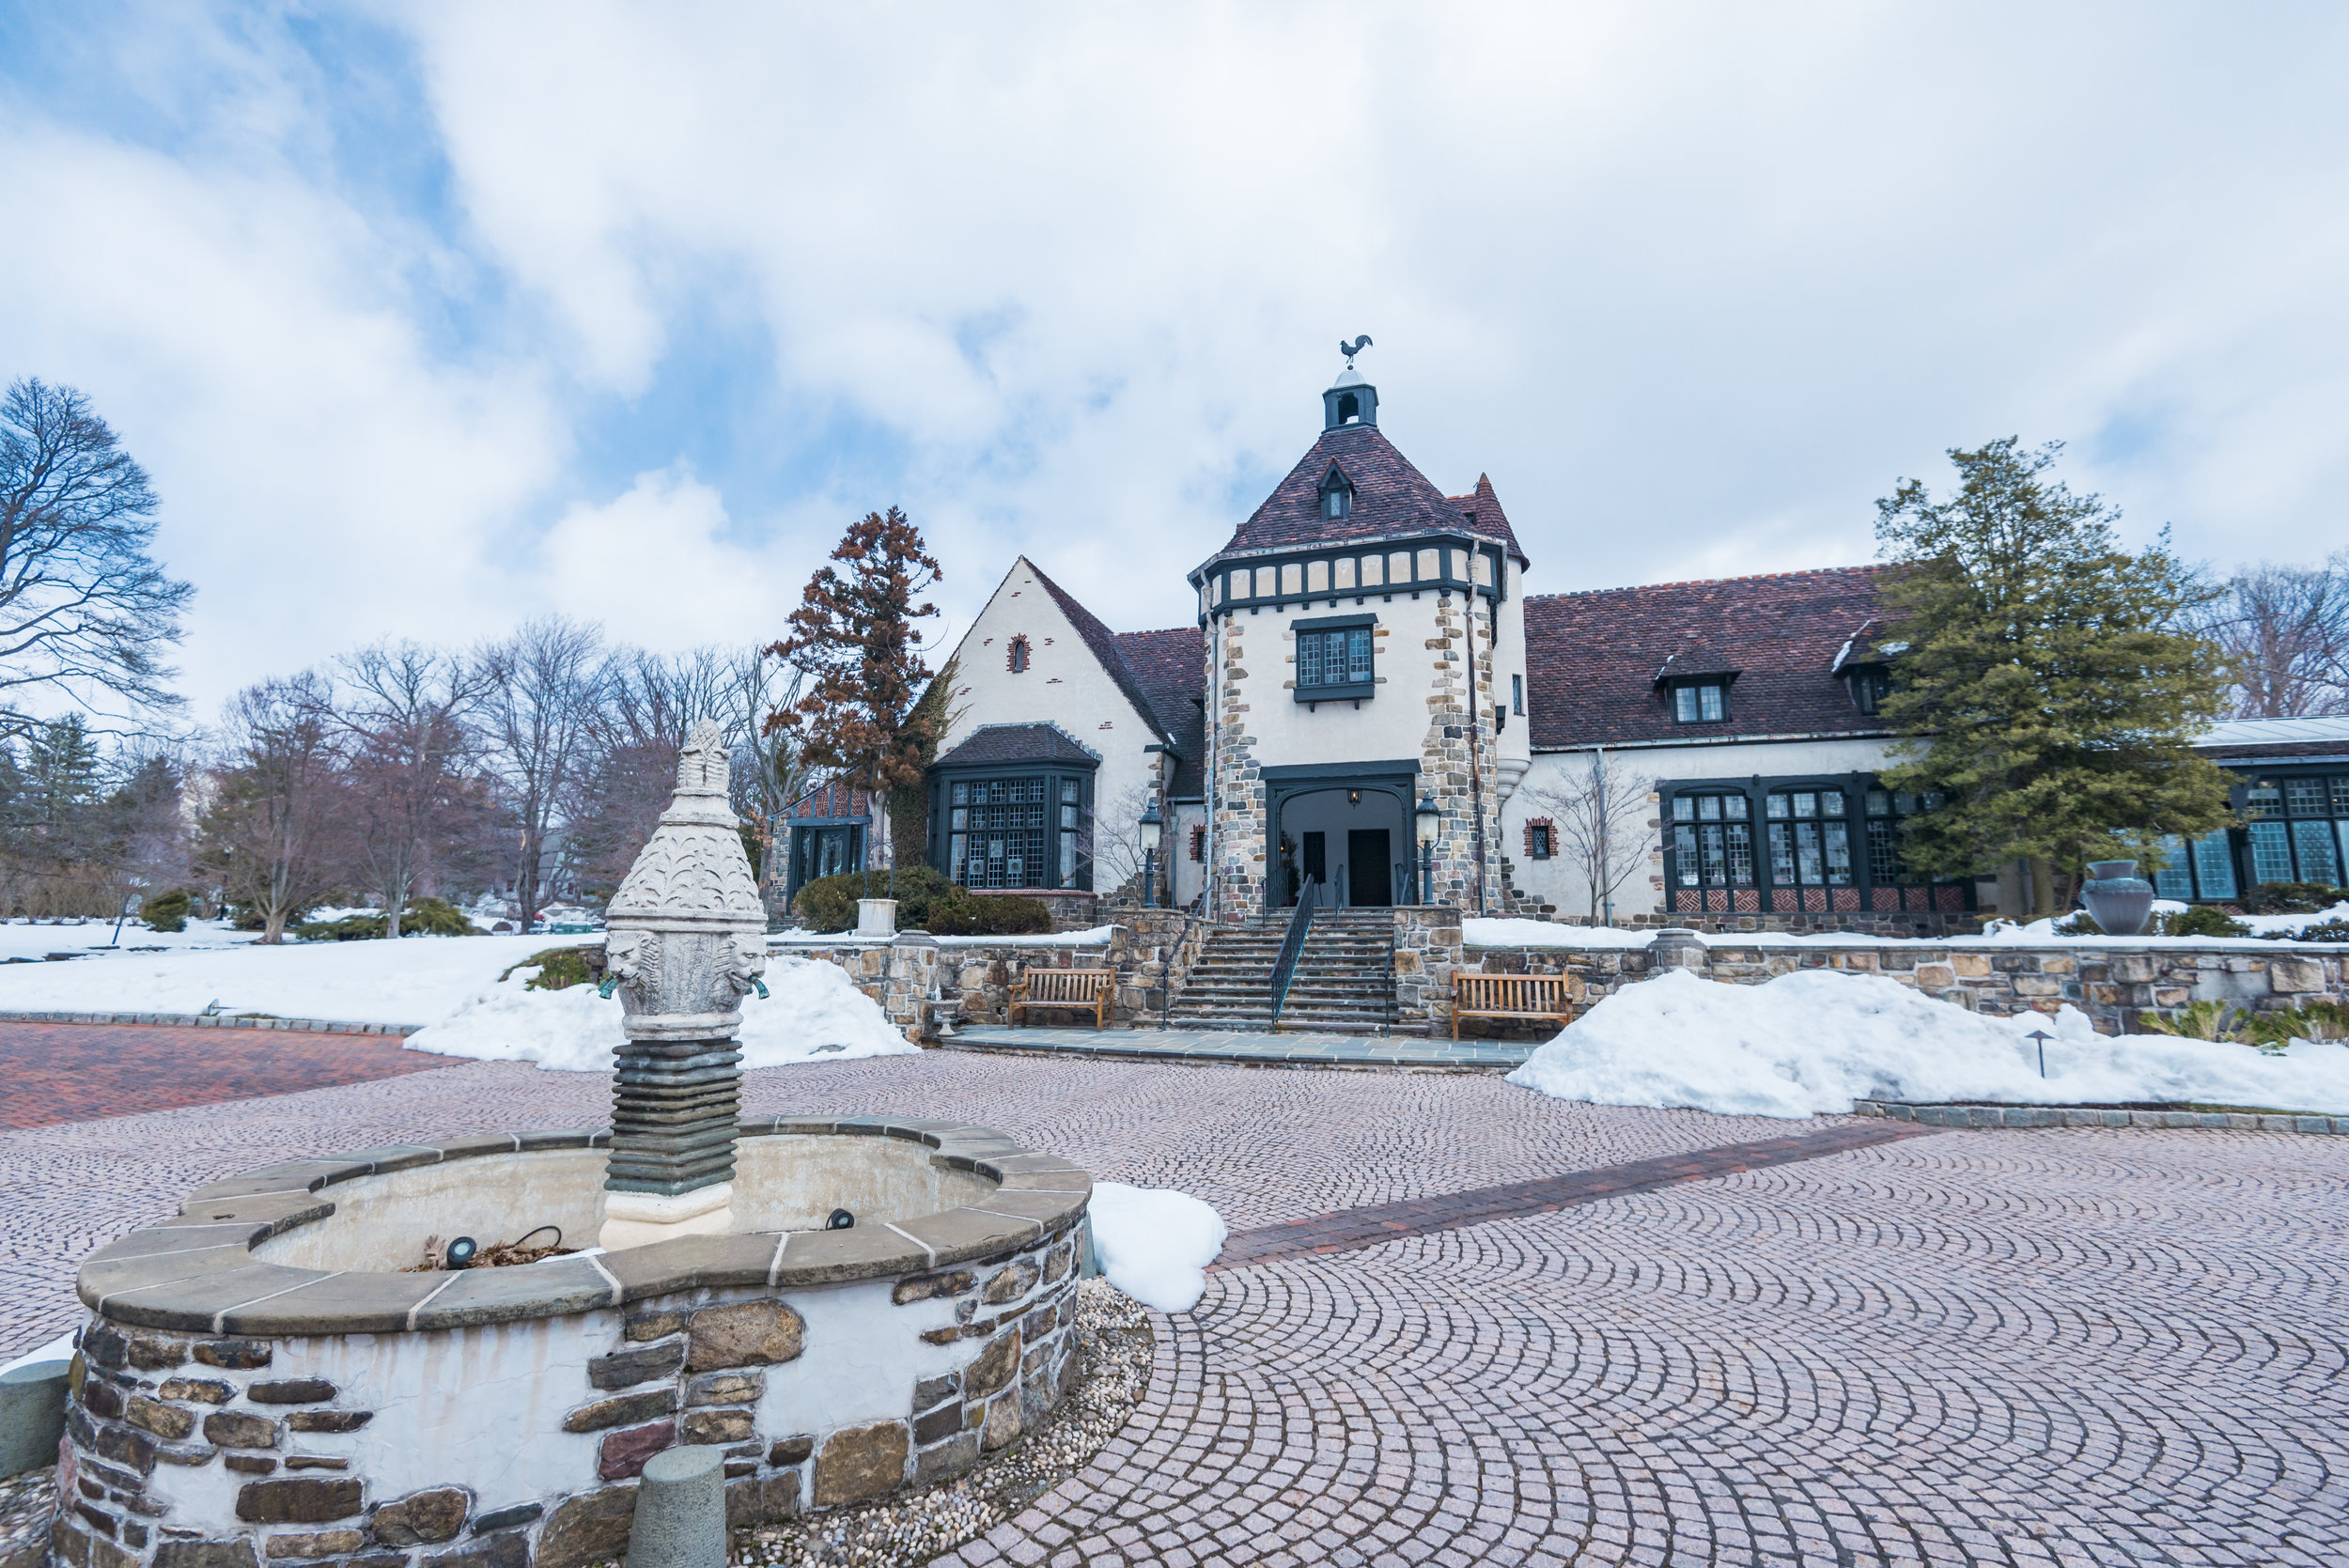 Samantha & Michael's beautiful winter wedding at the stunning Pleasantdale Chateau, located in New Jersey's countryside. #NewJerseyWedding #WeddingDress #pleasantdalechateau #RealChateau